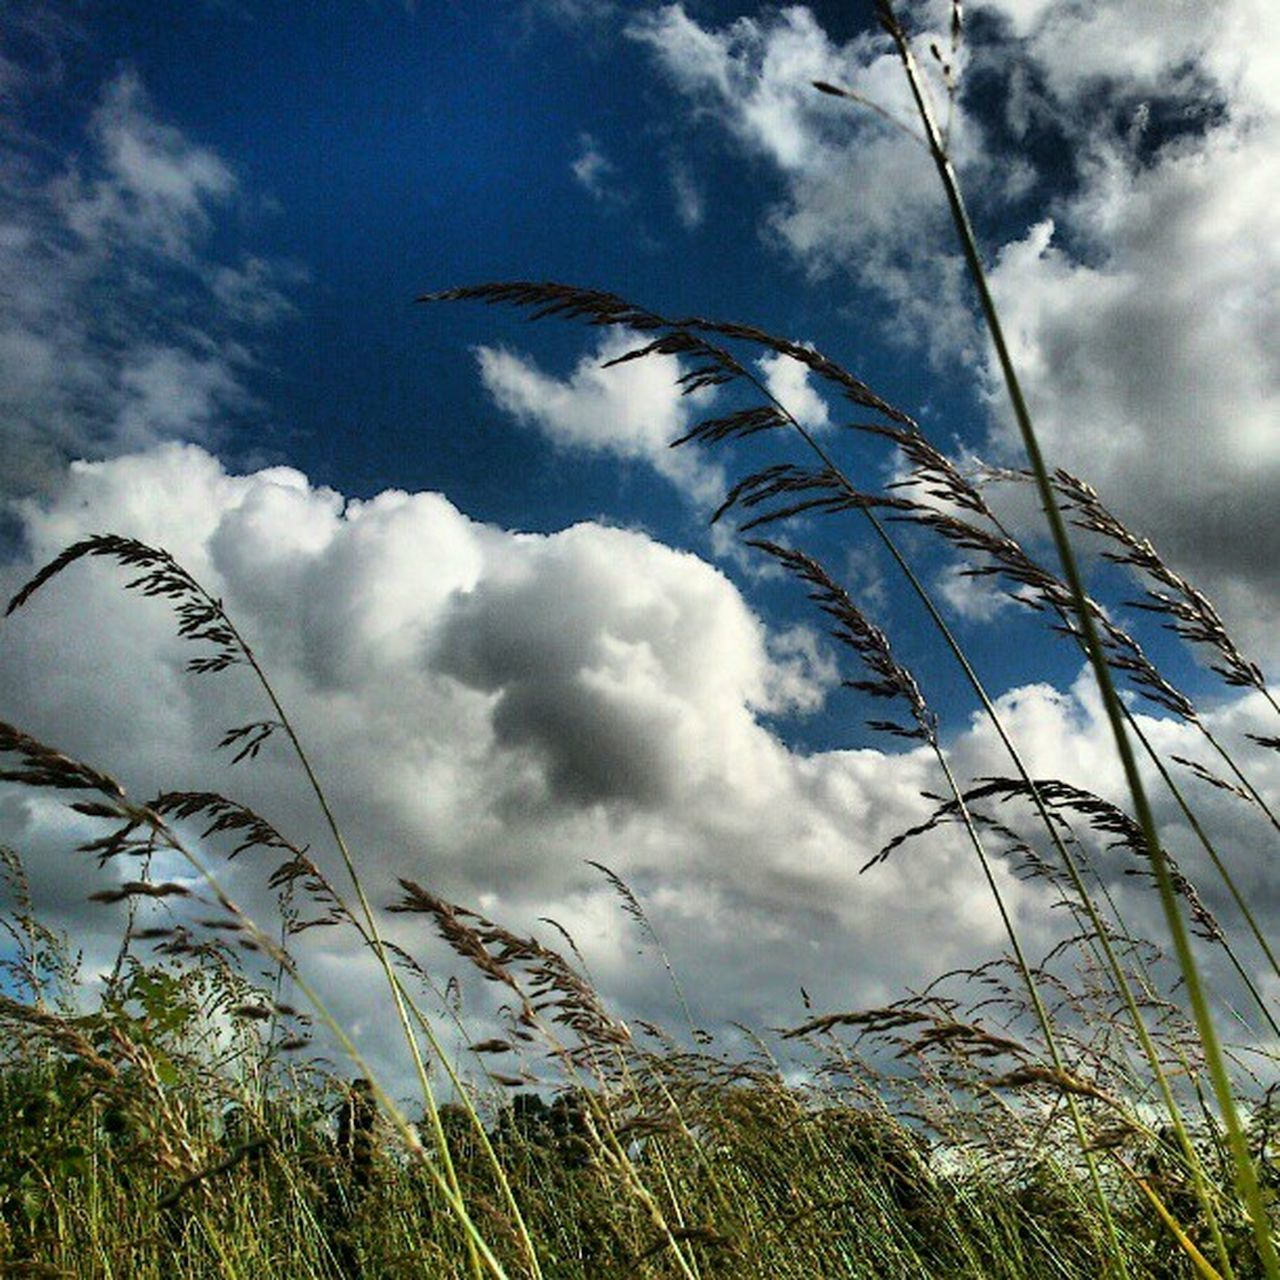 cloud - sky, sky, grass, nature, growth, day, low angle view, no people, outdoors, plant, beauty in nature, scenics